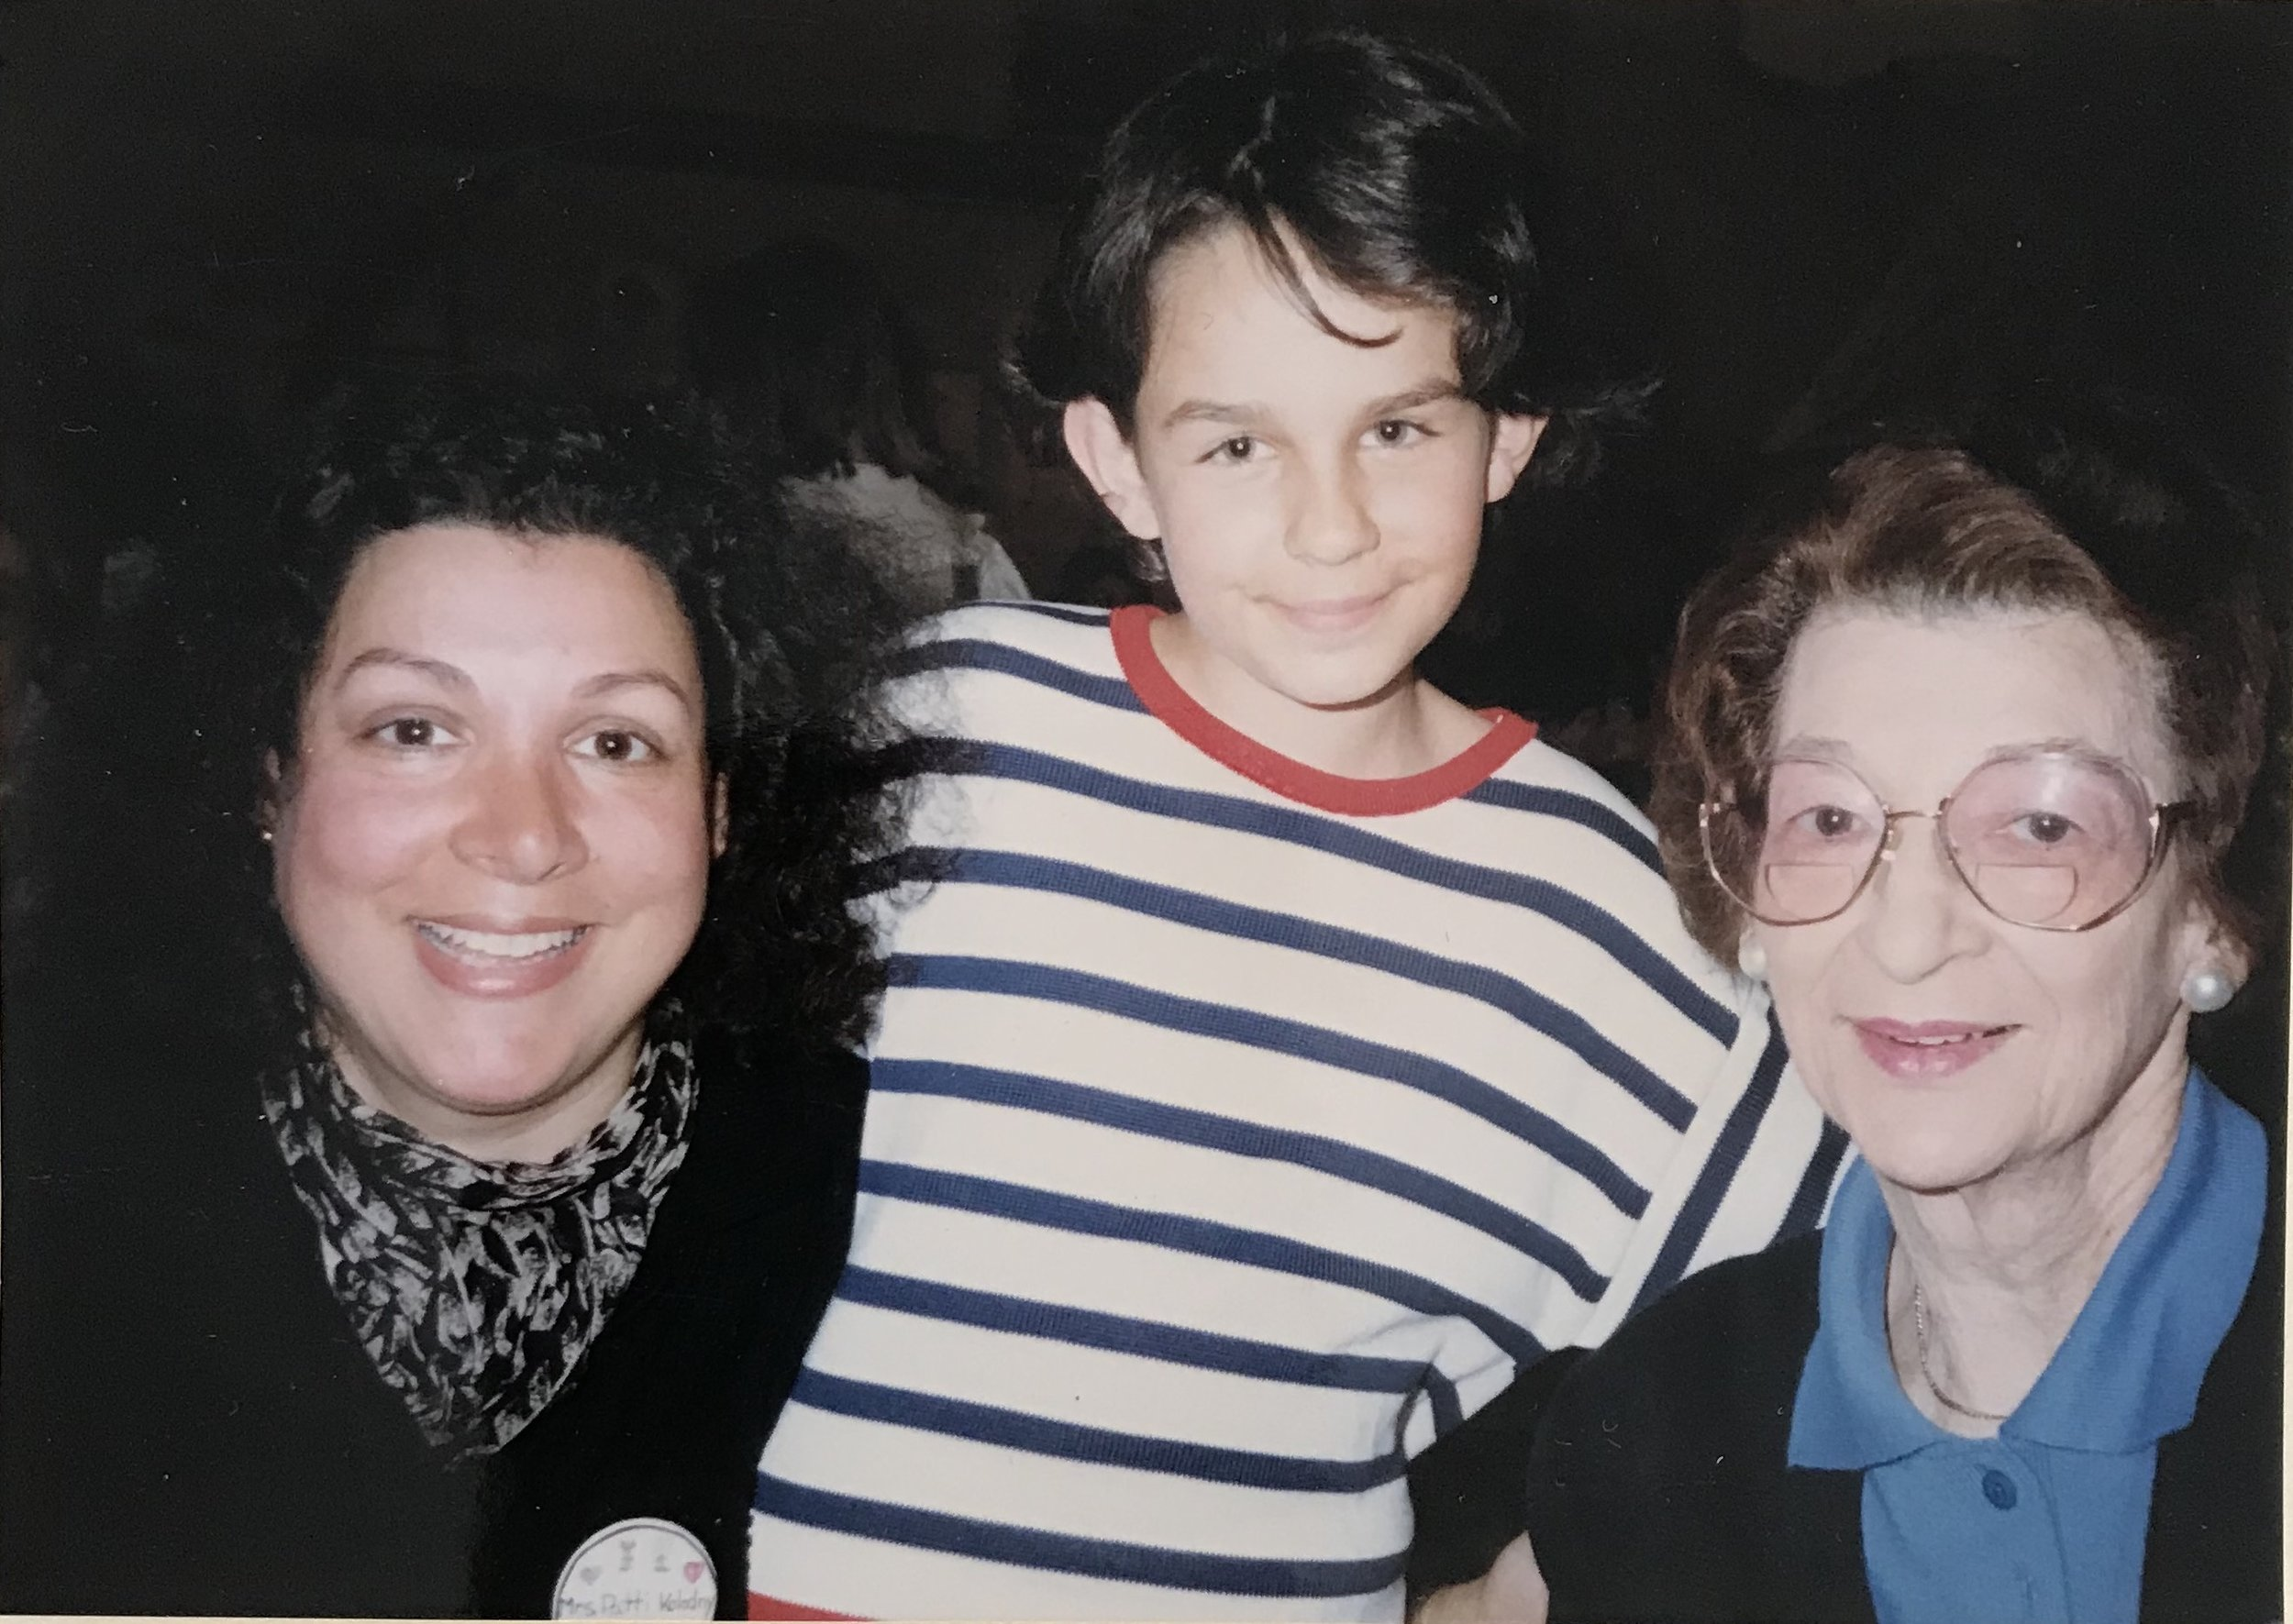 Patti, Johanna, and Evelyn at the Grandmother's Lunch at Chapin School, Princeton, NJ, 1986